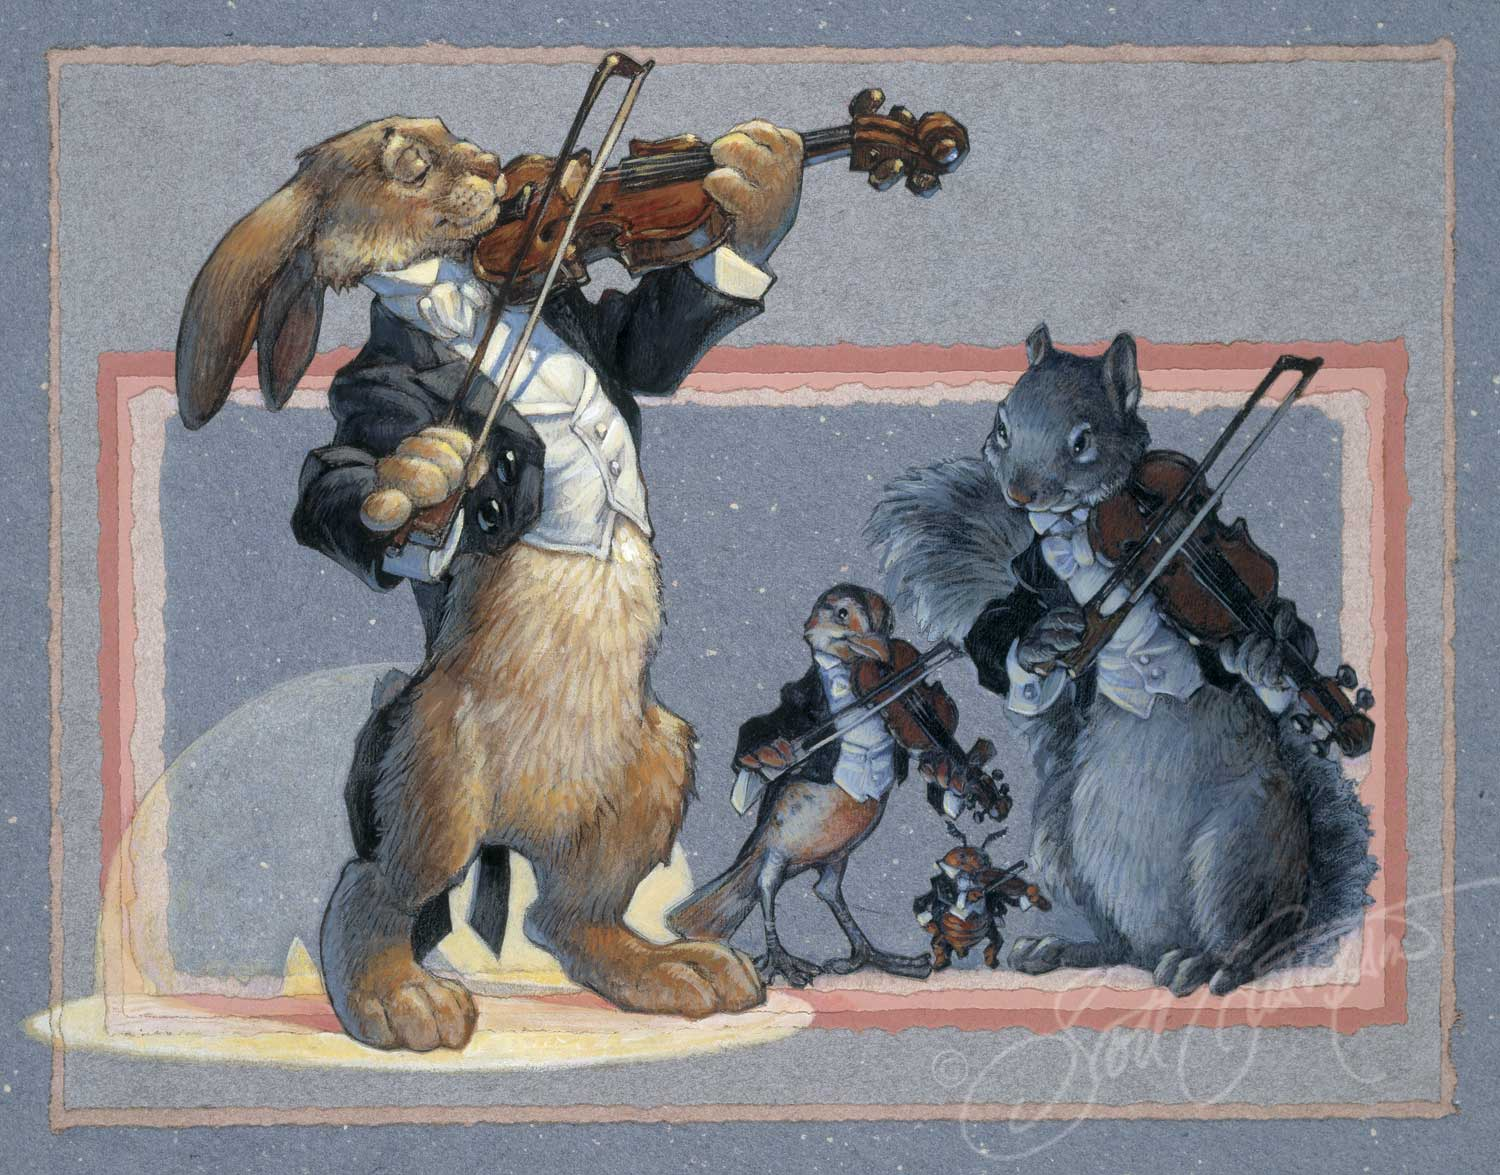 Violins: Mr. Rabbit, Mr. Beetle, Ms. Meadowlark and Mr. Squirrel